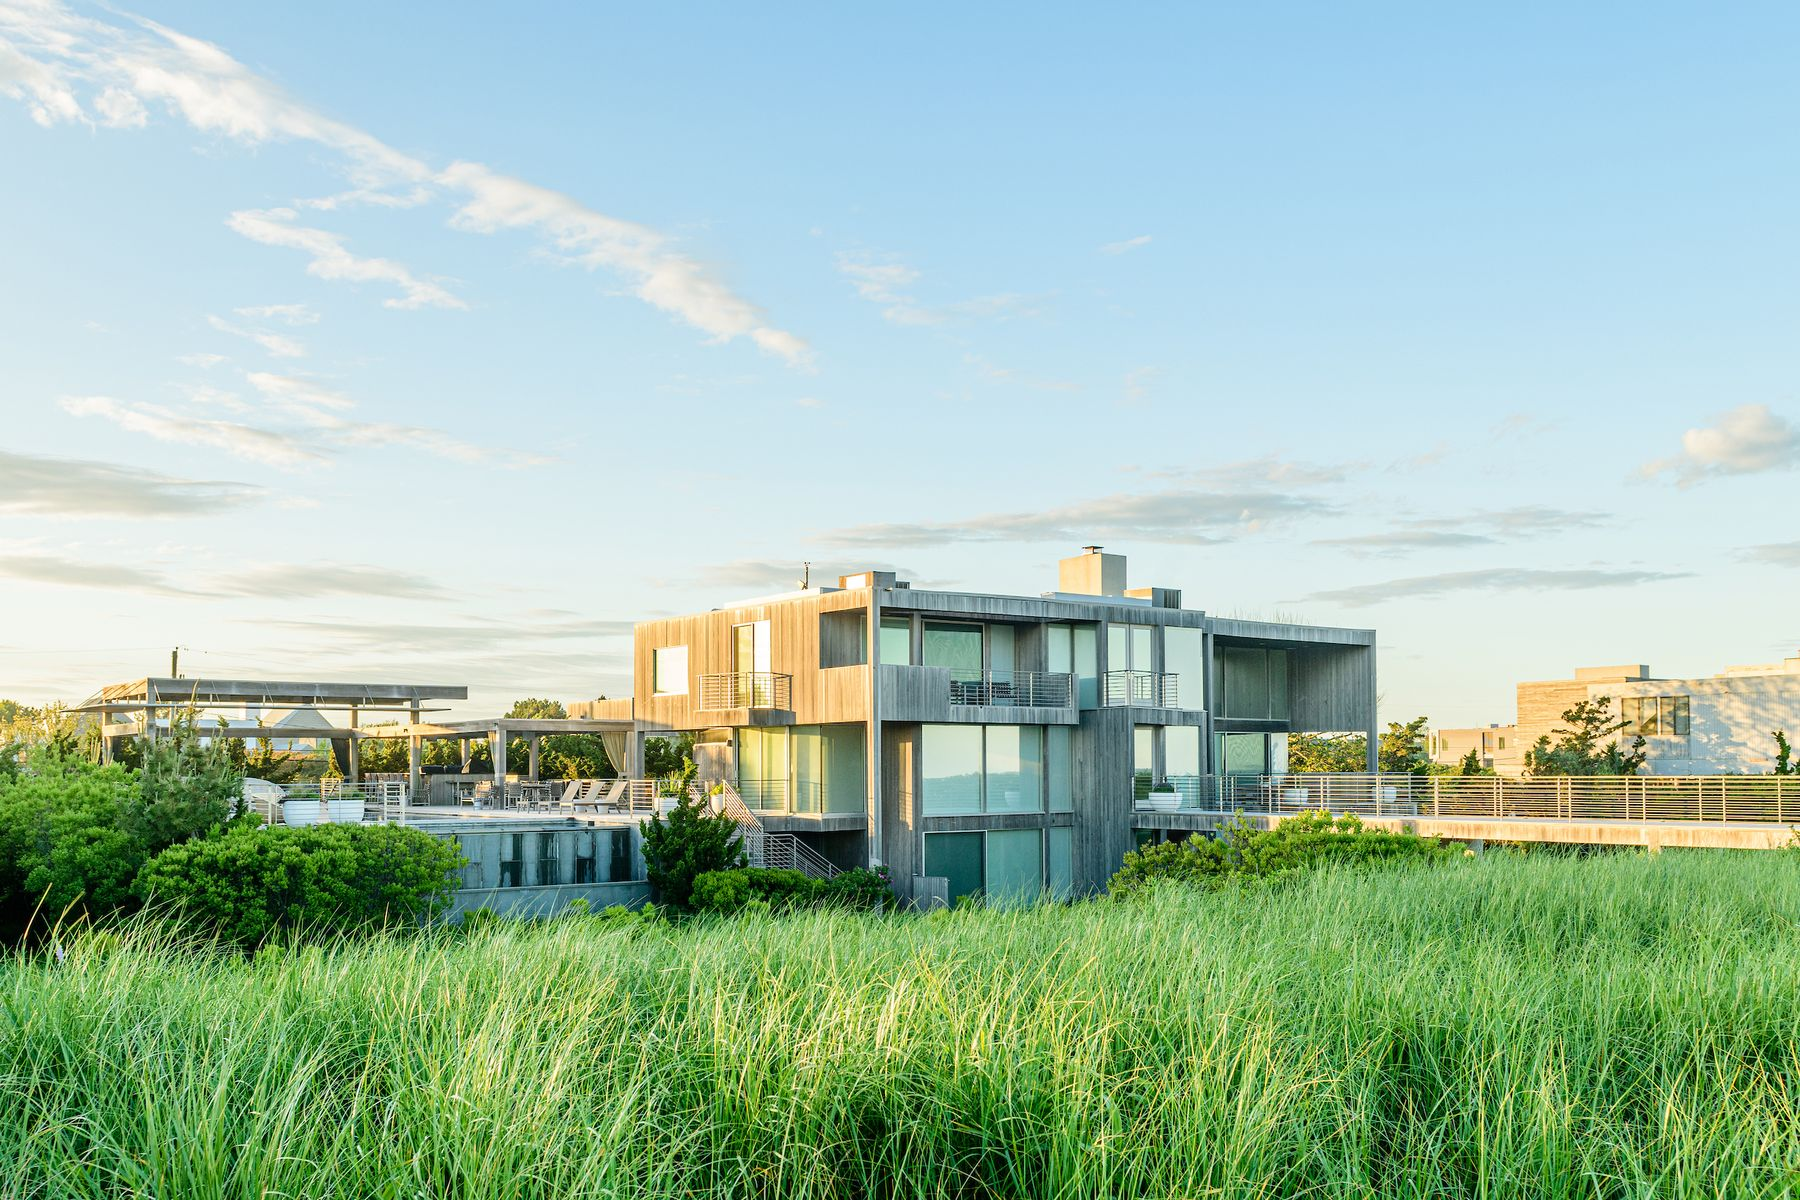 Single Family Homes for Active at The Best of The Best Oceanfront 67 Surfside Dr Bridgehampton, New York 11932 United States